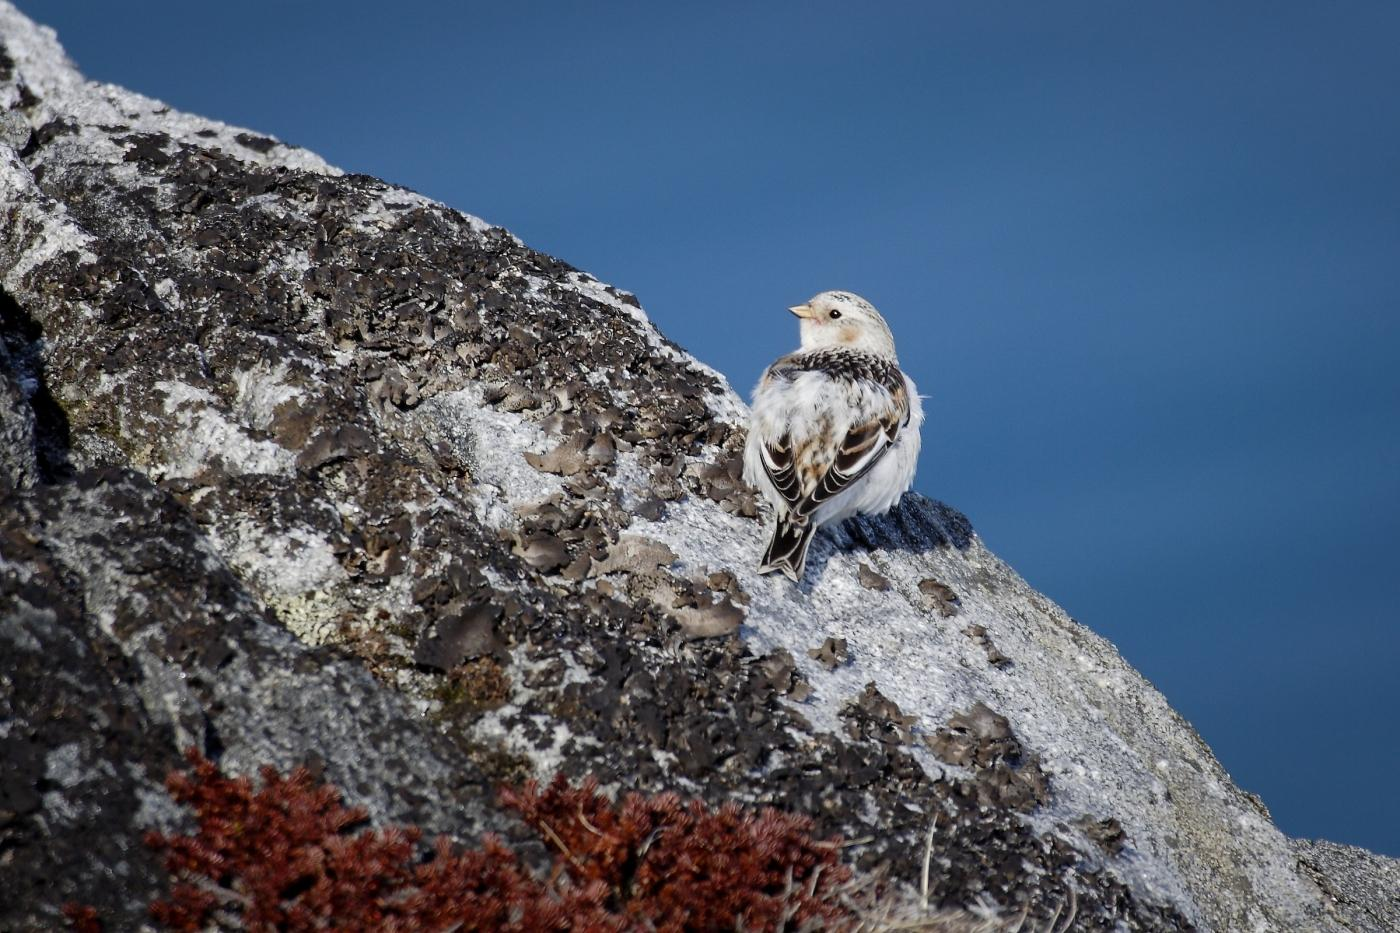 A snow bunting on a cliff in Greenland. Photo by Aqqa Rosing Asvid - Visit Greenland